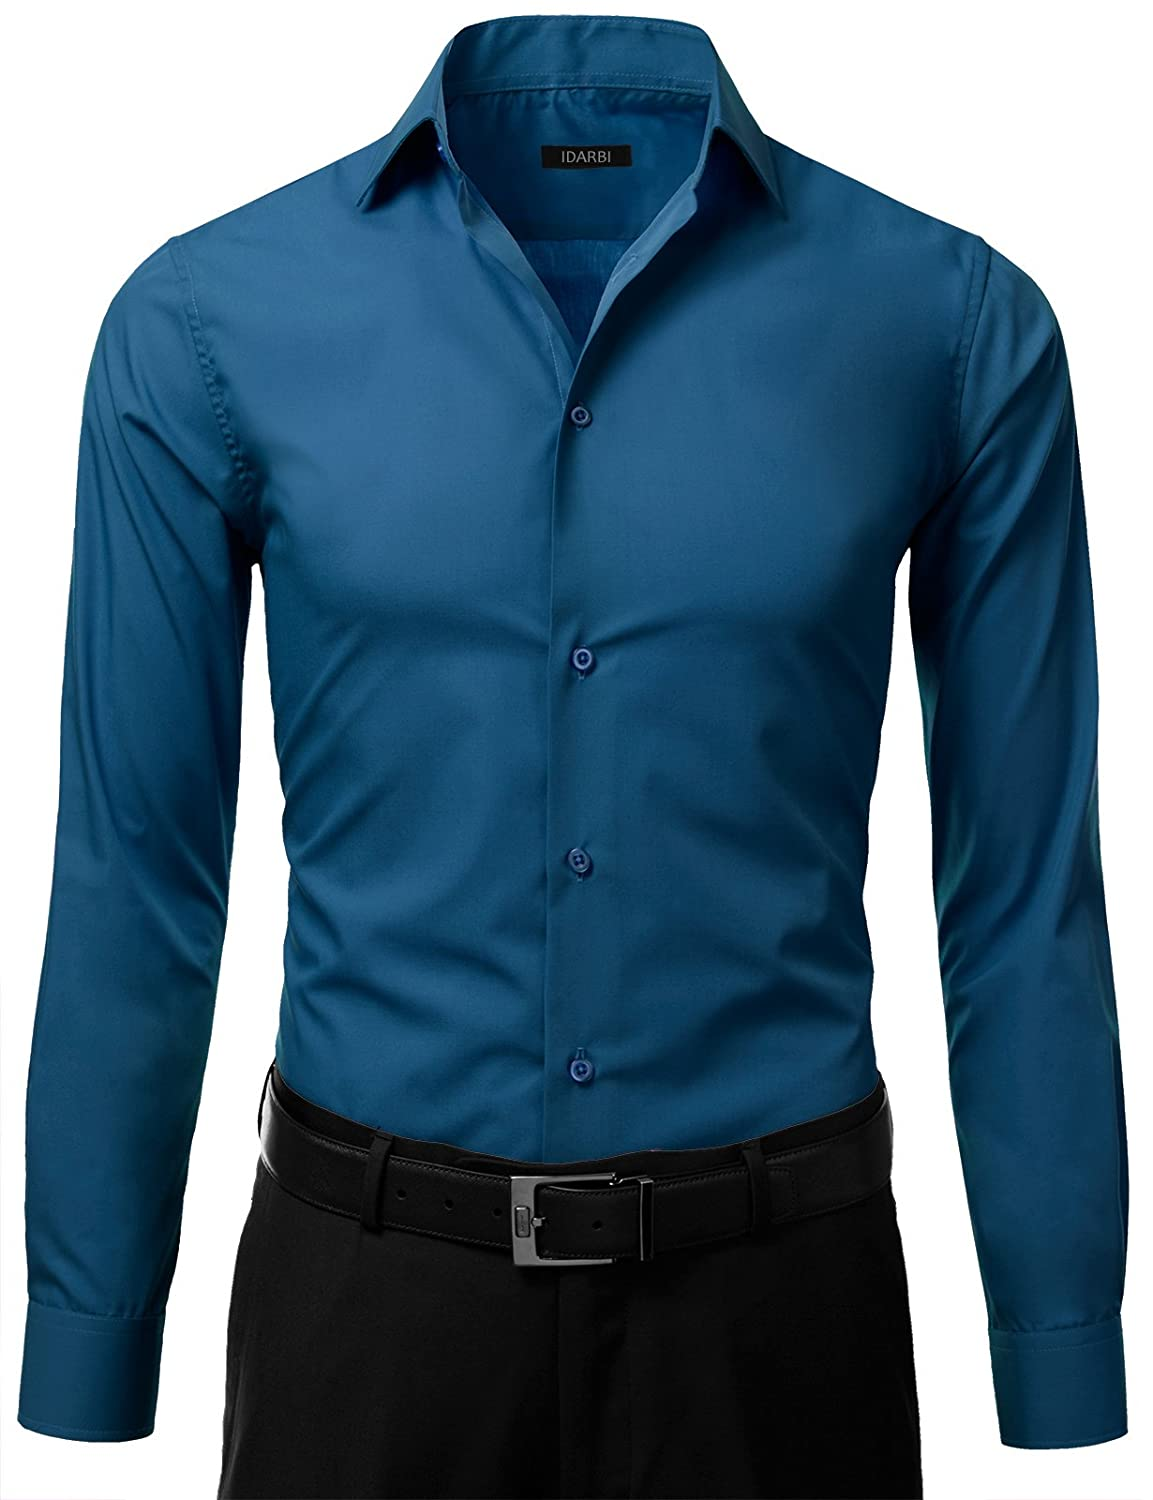 Simple Many Believe That Blue Is A Color More Suited To Men And Thereby Put It Firmly In The Formal Wear Category When It Comes To Women Wearing This Color  Blue Cotton Looks Awesome In Dresses, Shirts, Skirts And All Other Garments Blue Silk If